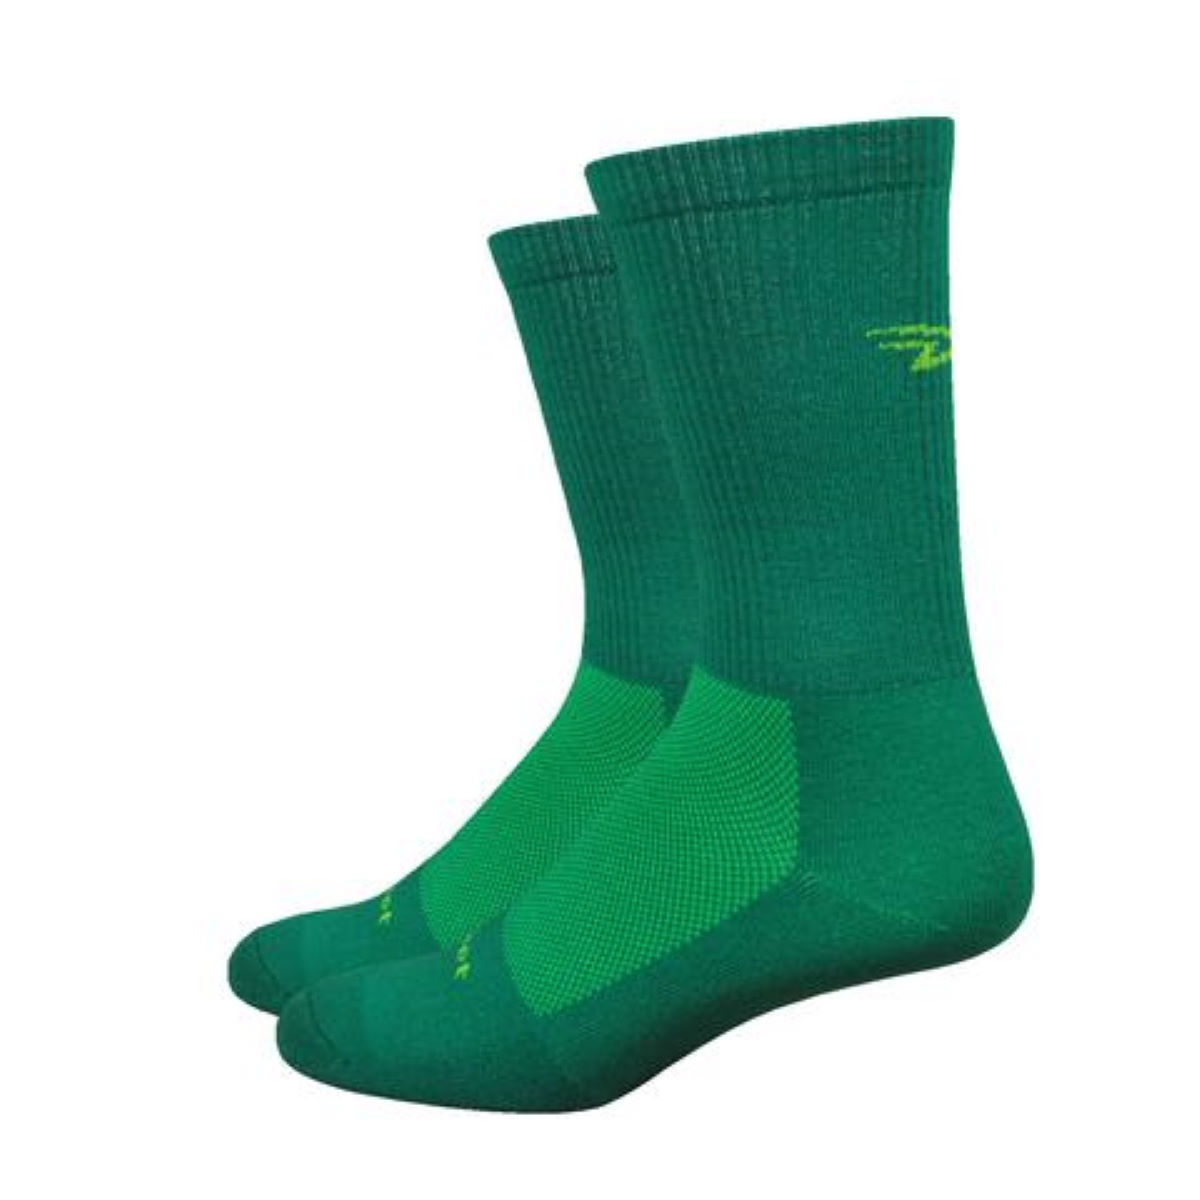 "DeFeet DeFeet Levitator Trail 6"" D-Logo Socks   Socks"